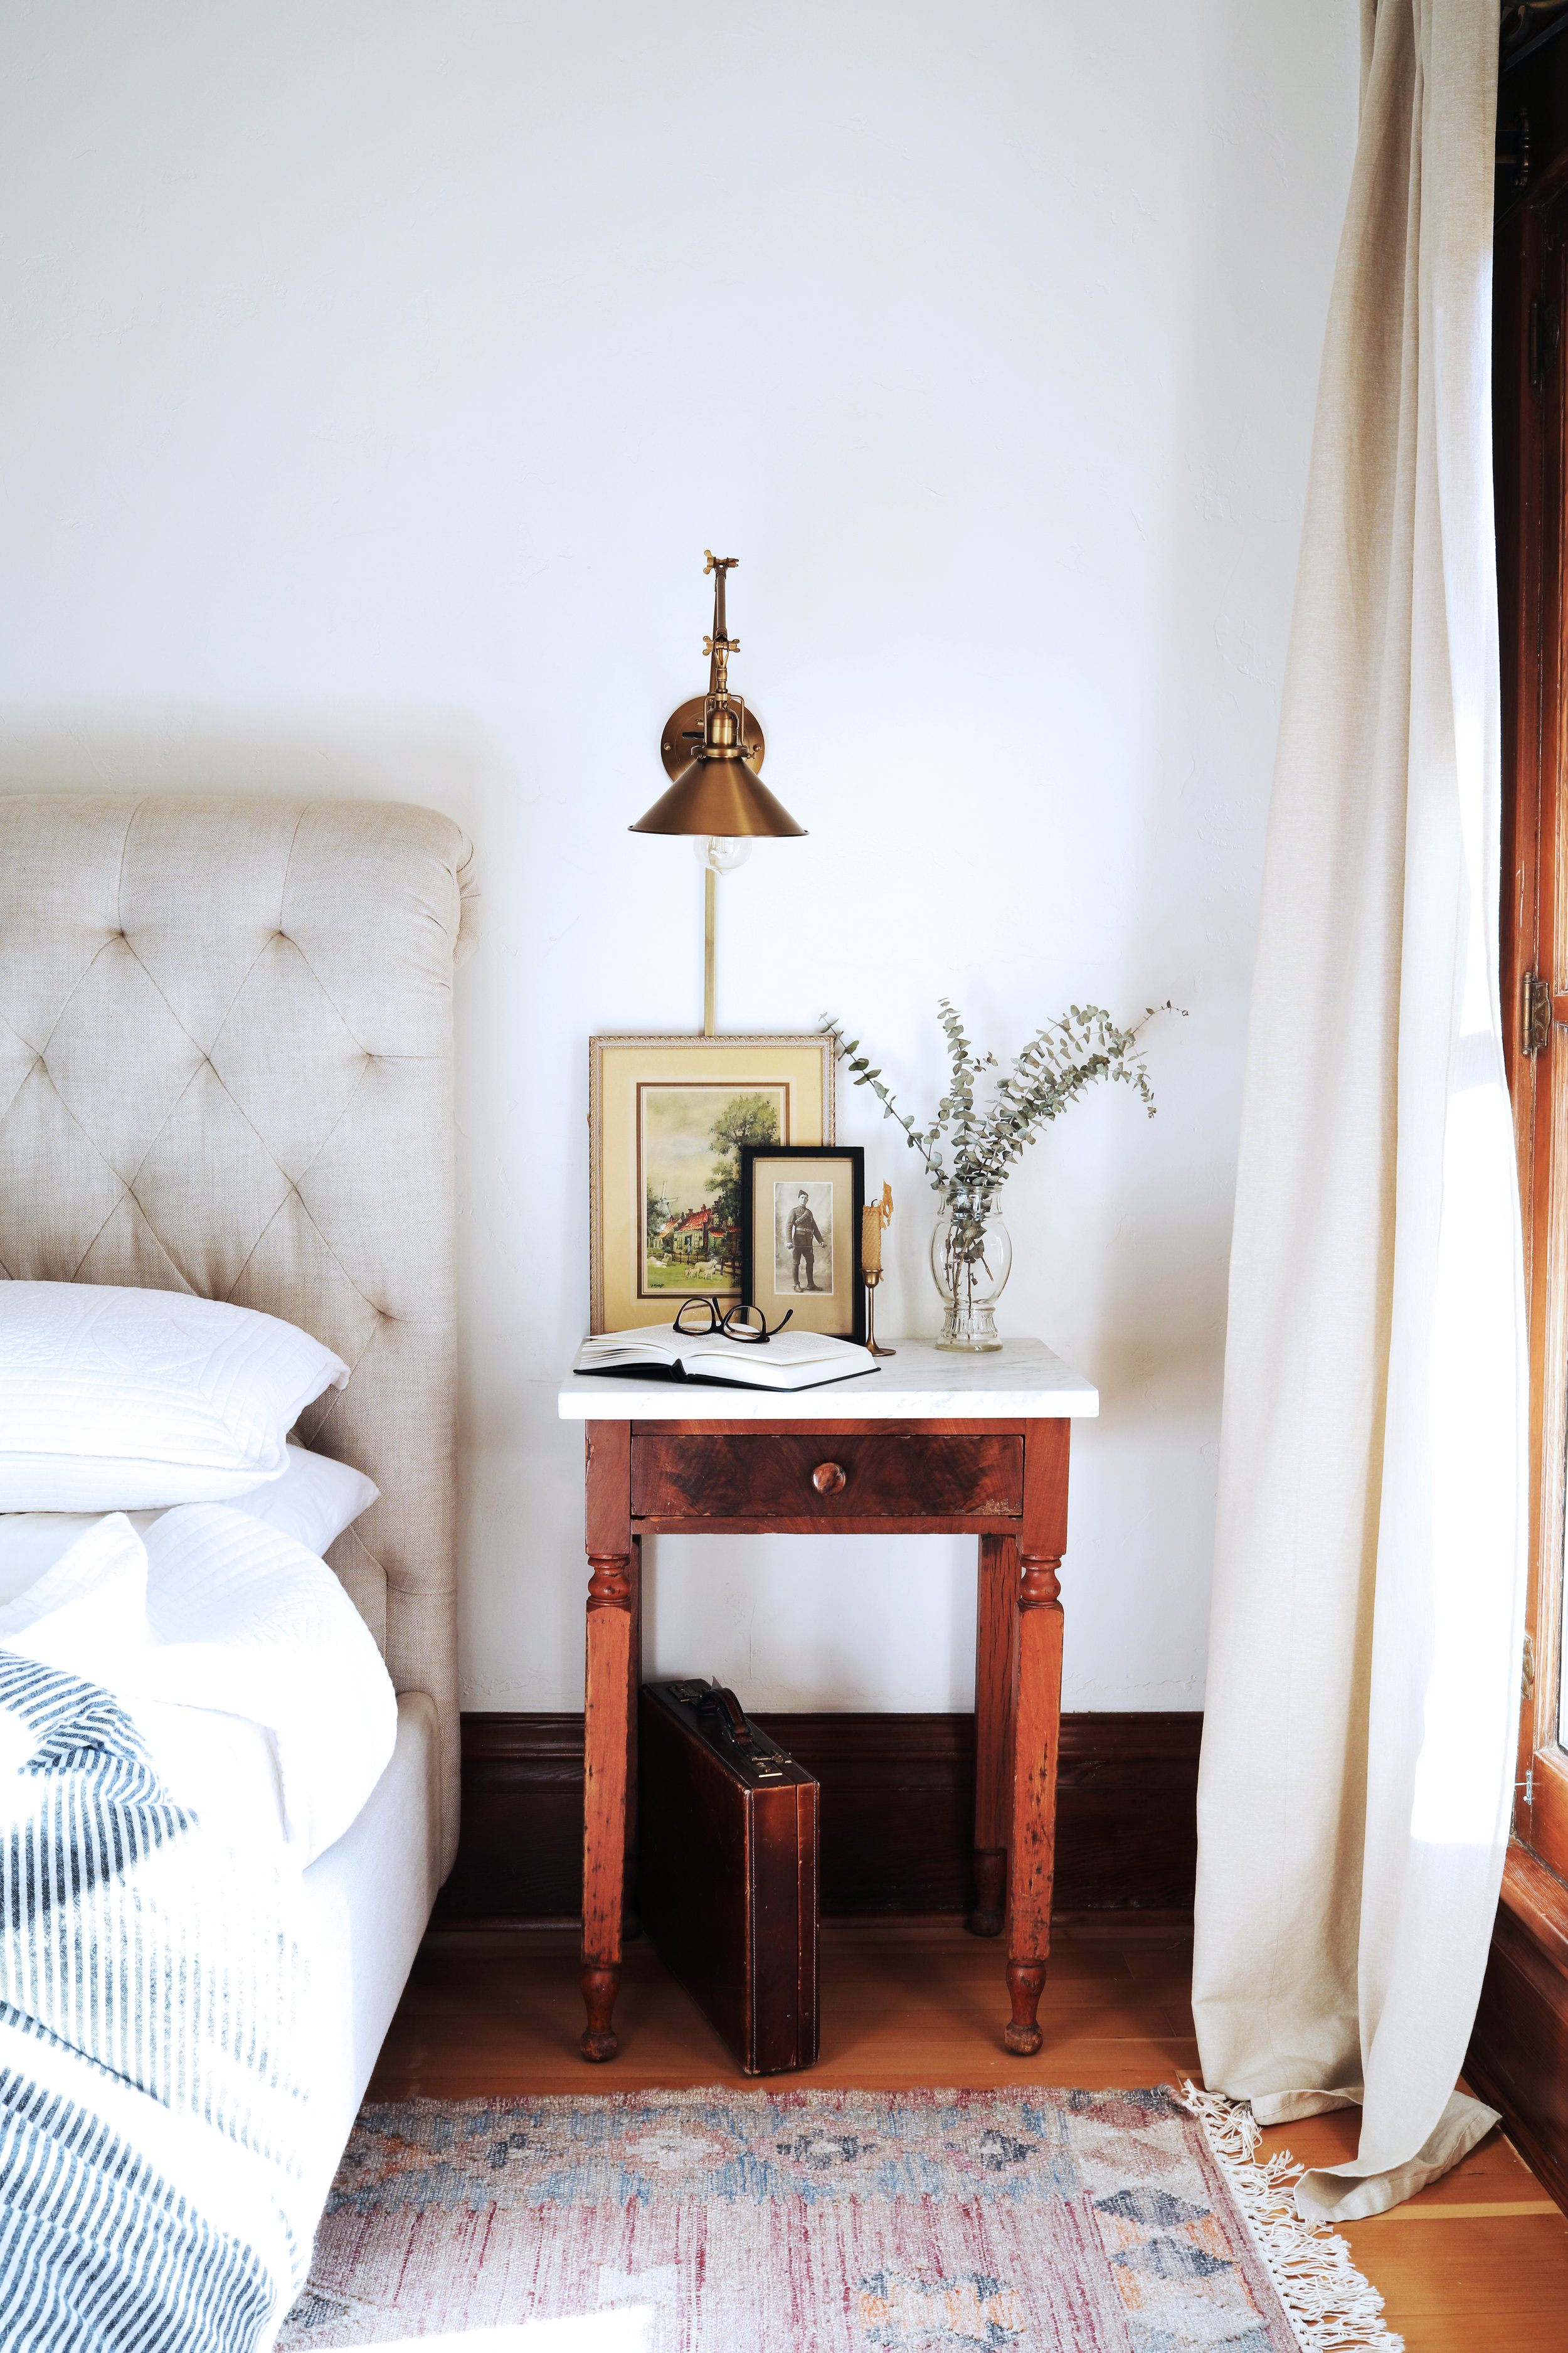 Diy Stone Topped Side Table How We Cut And Hone Marble And Stone At Home The Grit And Polish